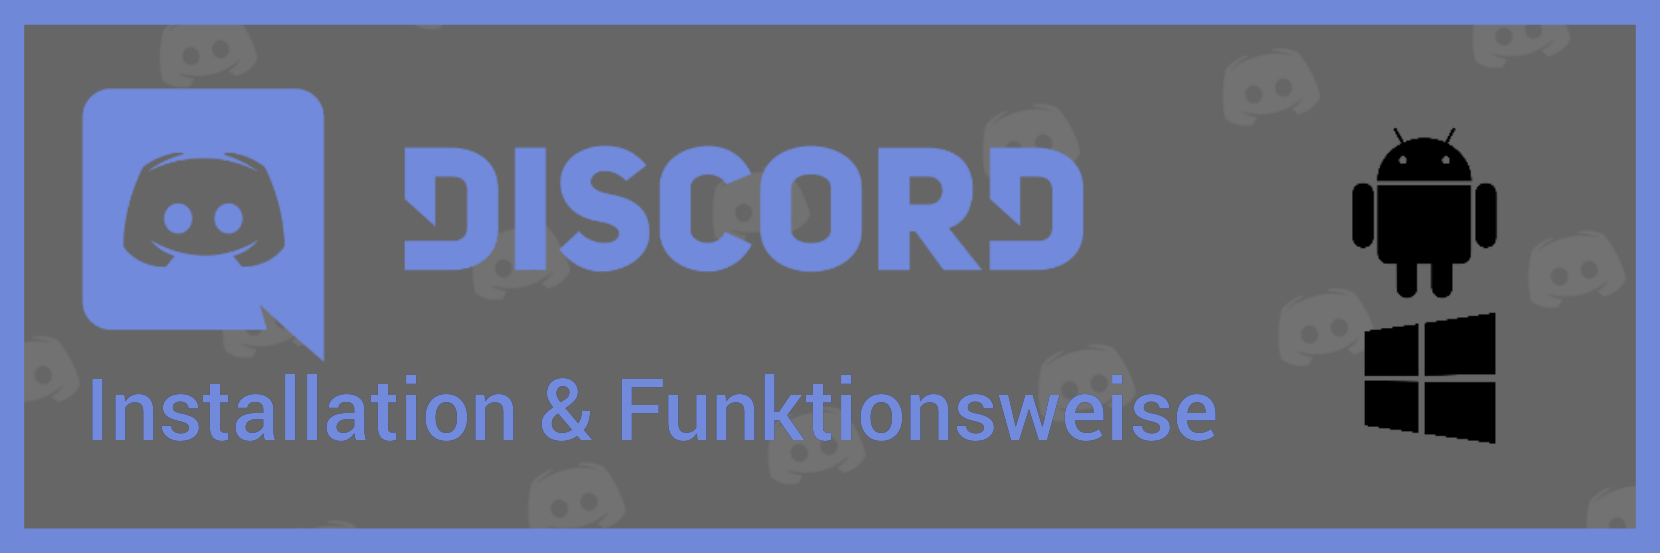 Discord Wiki Header.png